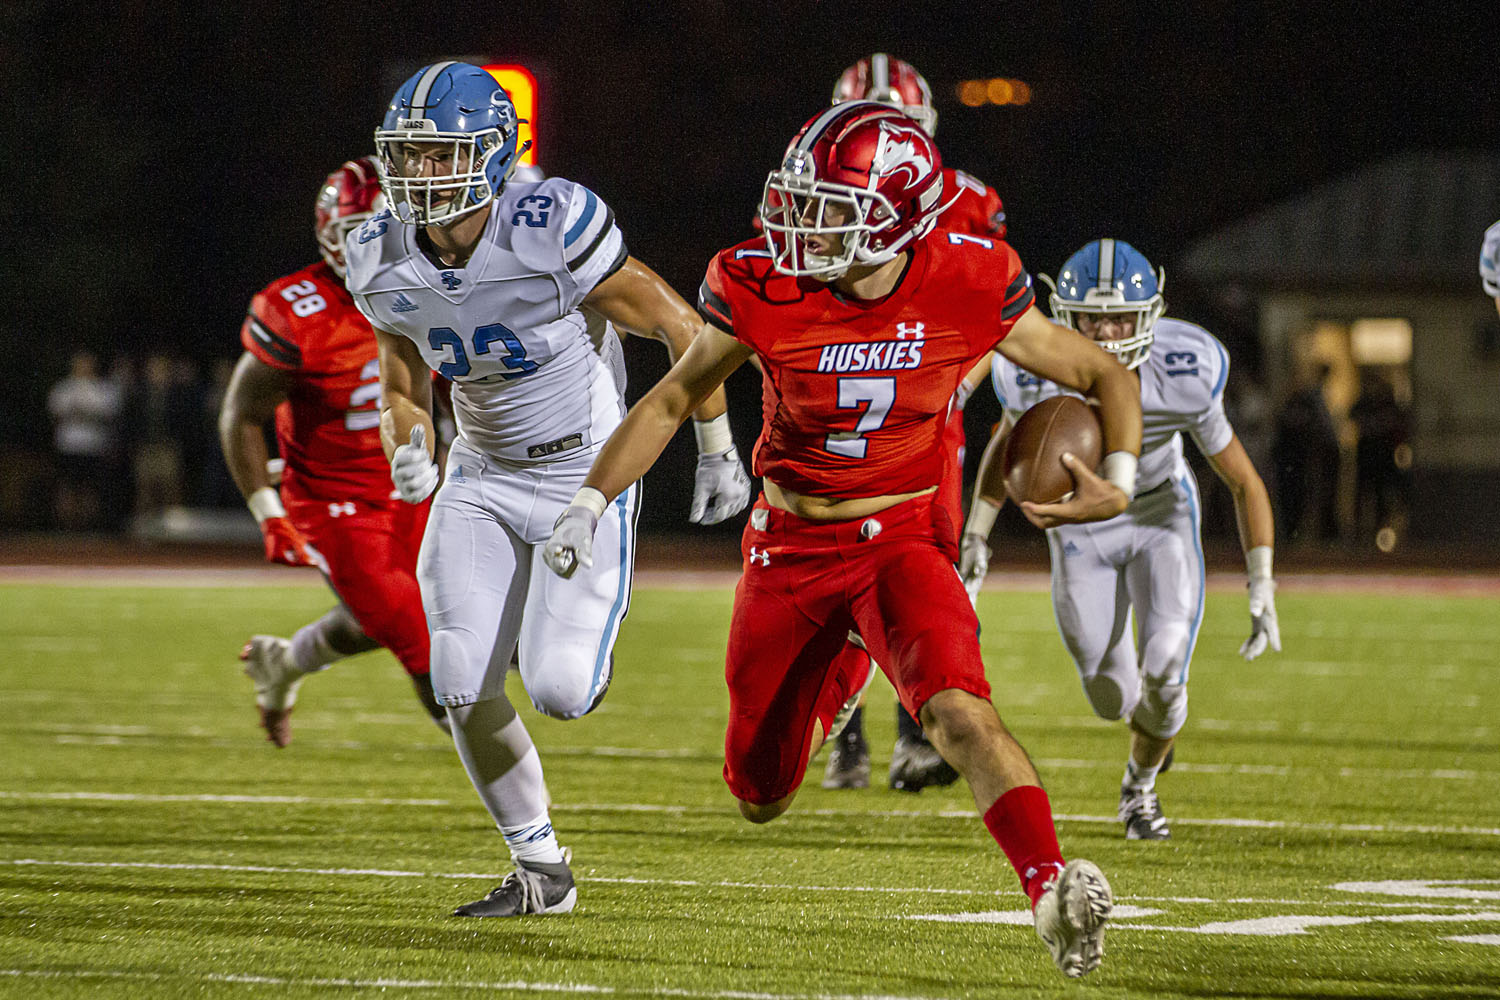 Playoff push begins for both Vestavia Hills, Hewitt-Trussville this Friday